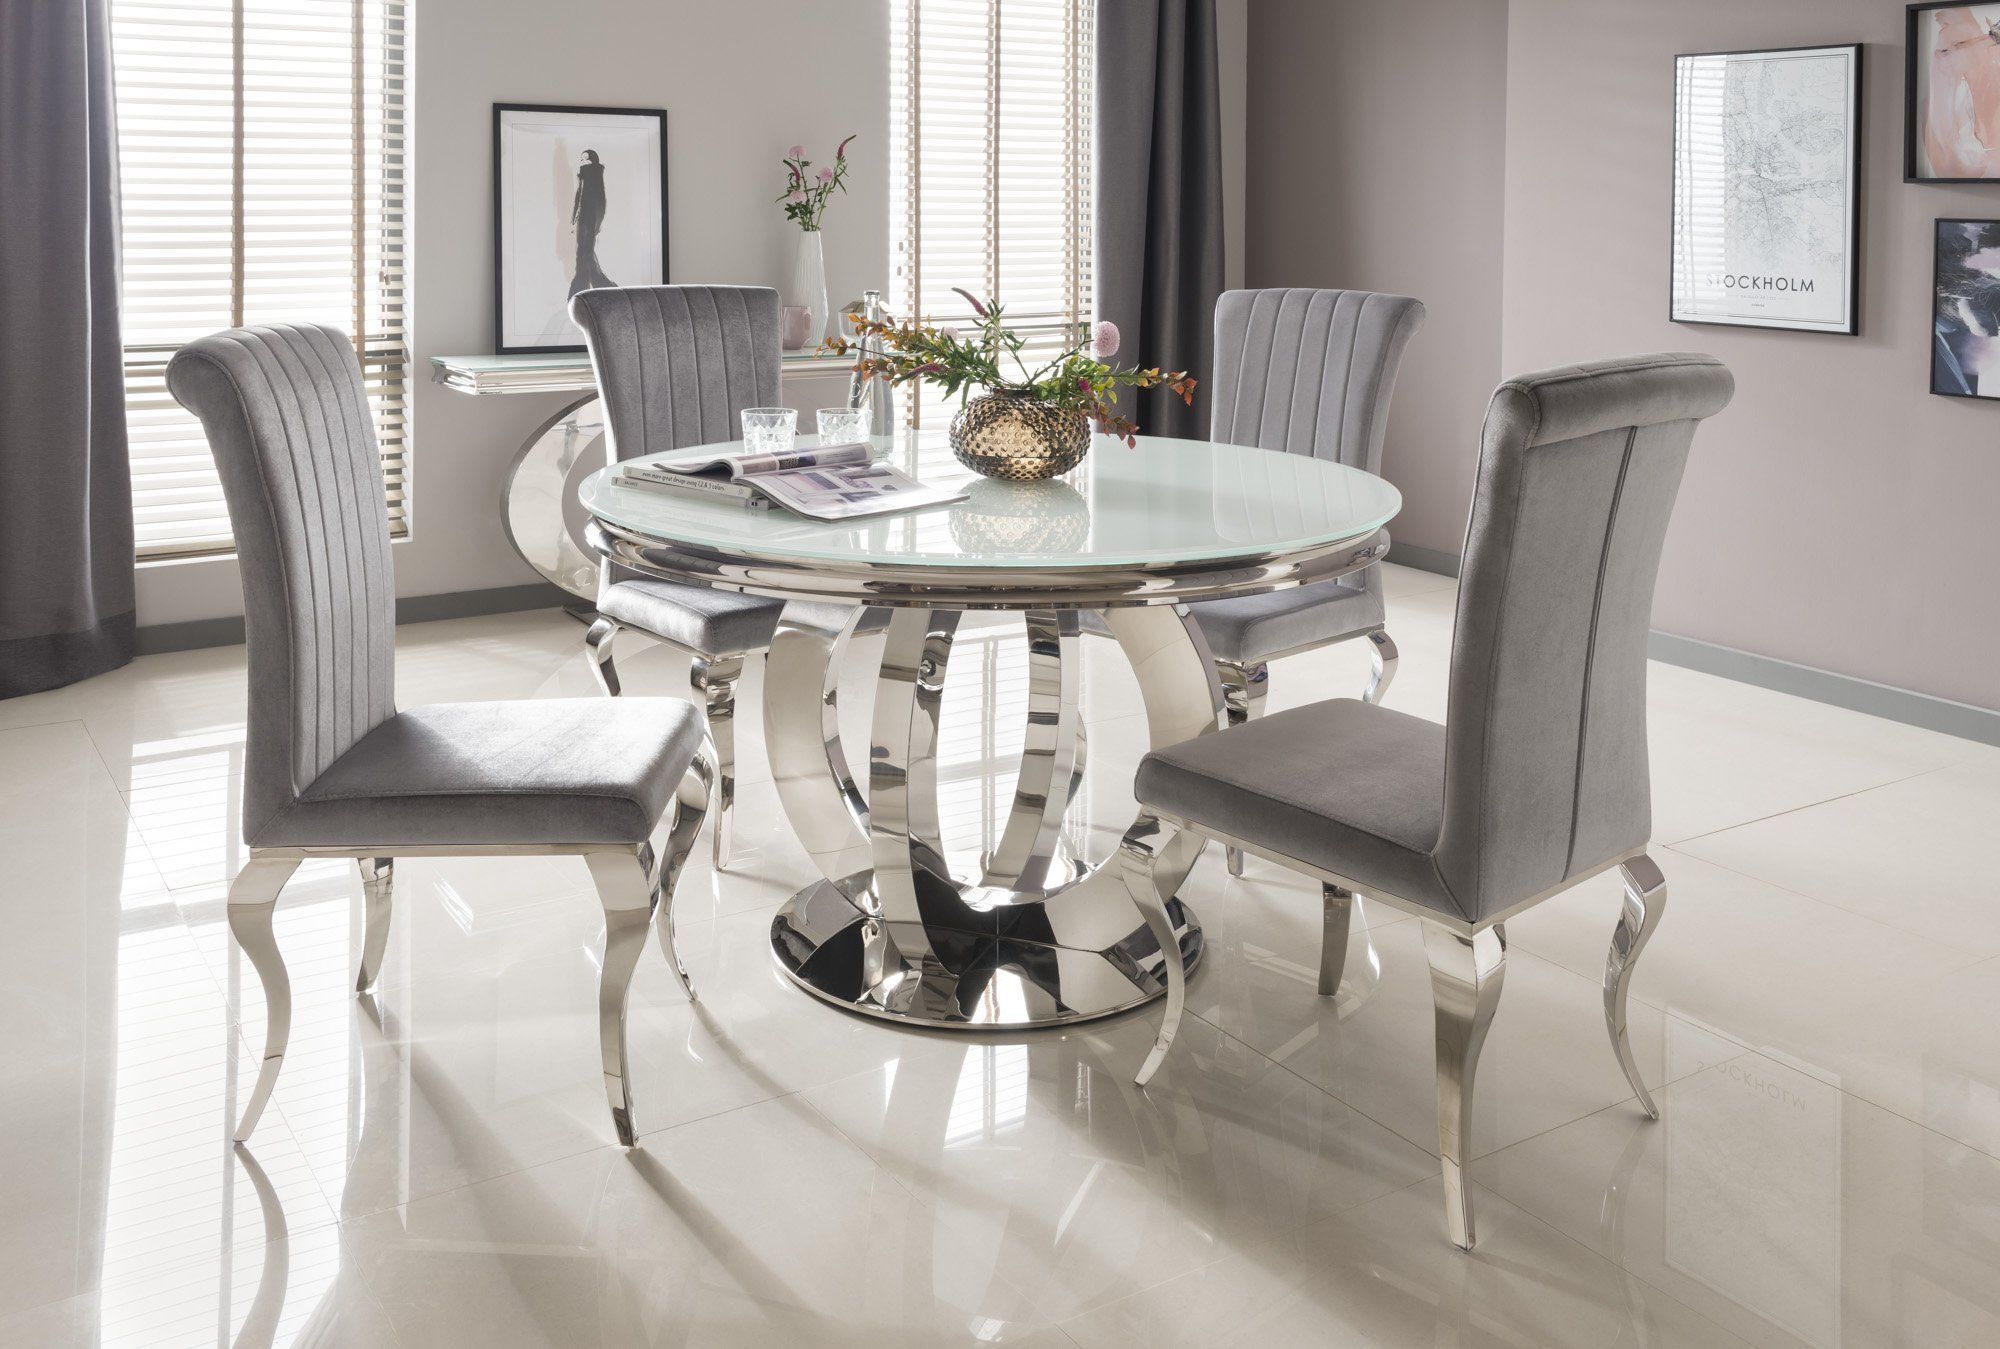 Pin By Sara Esaa On San Francisco House Round Dining Room Table Round Dining Room Sets Glass Round Dining Table